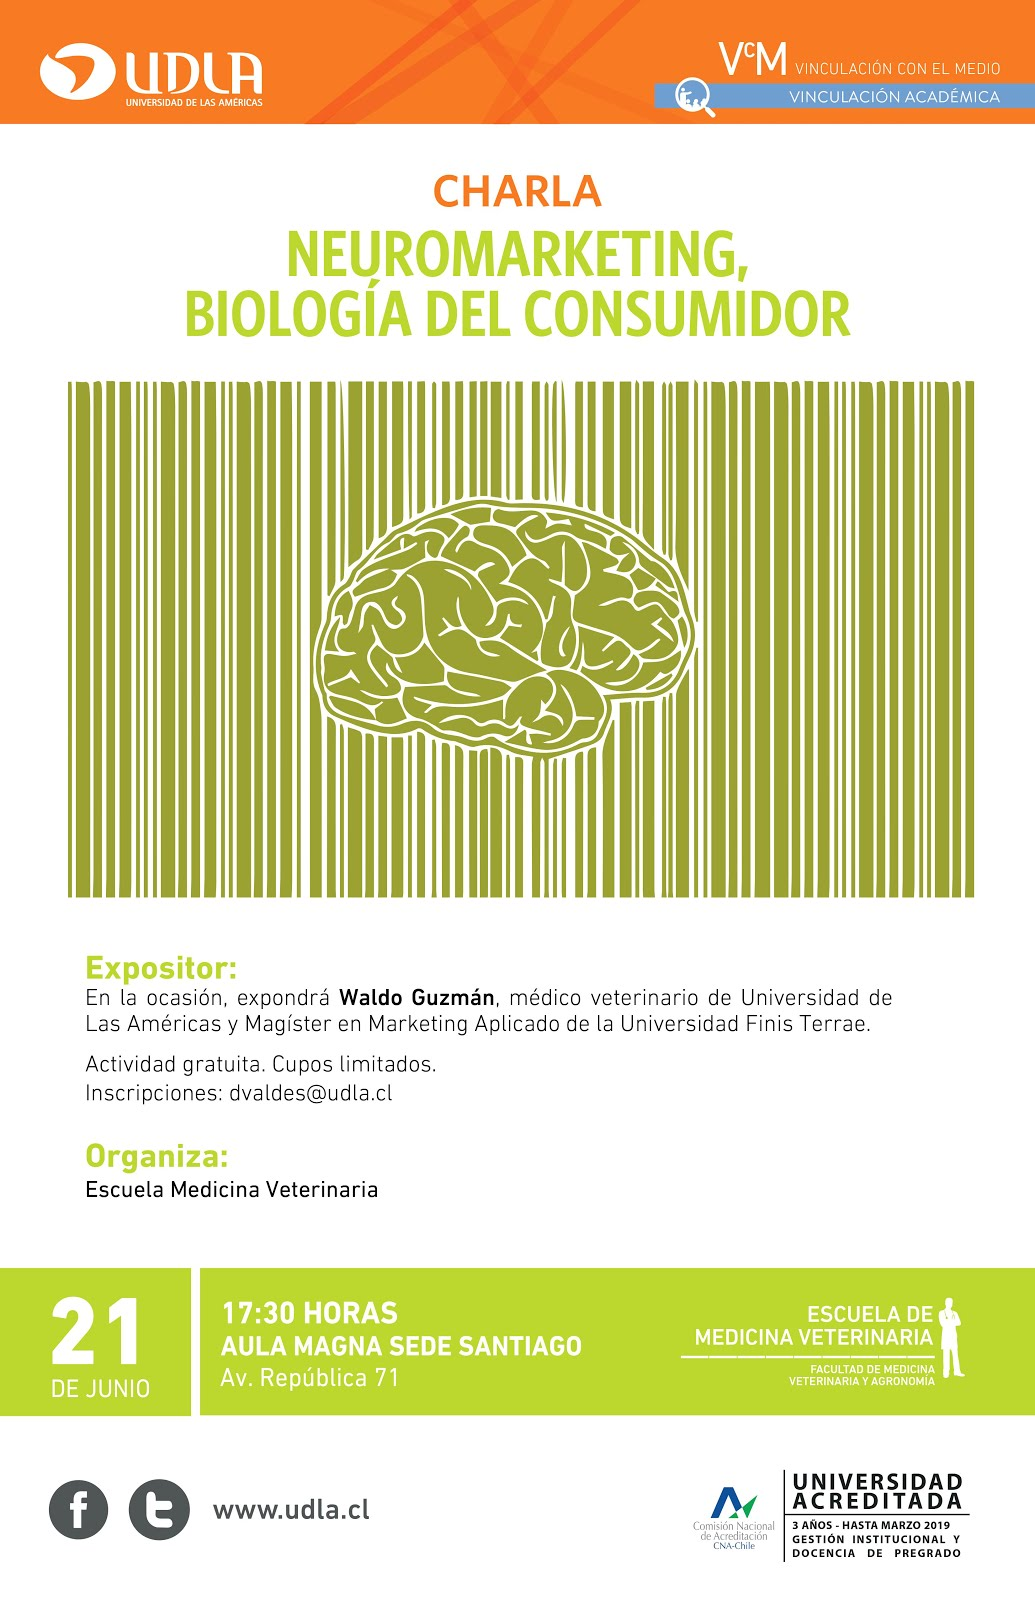 Charla Neuromarketing